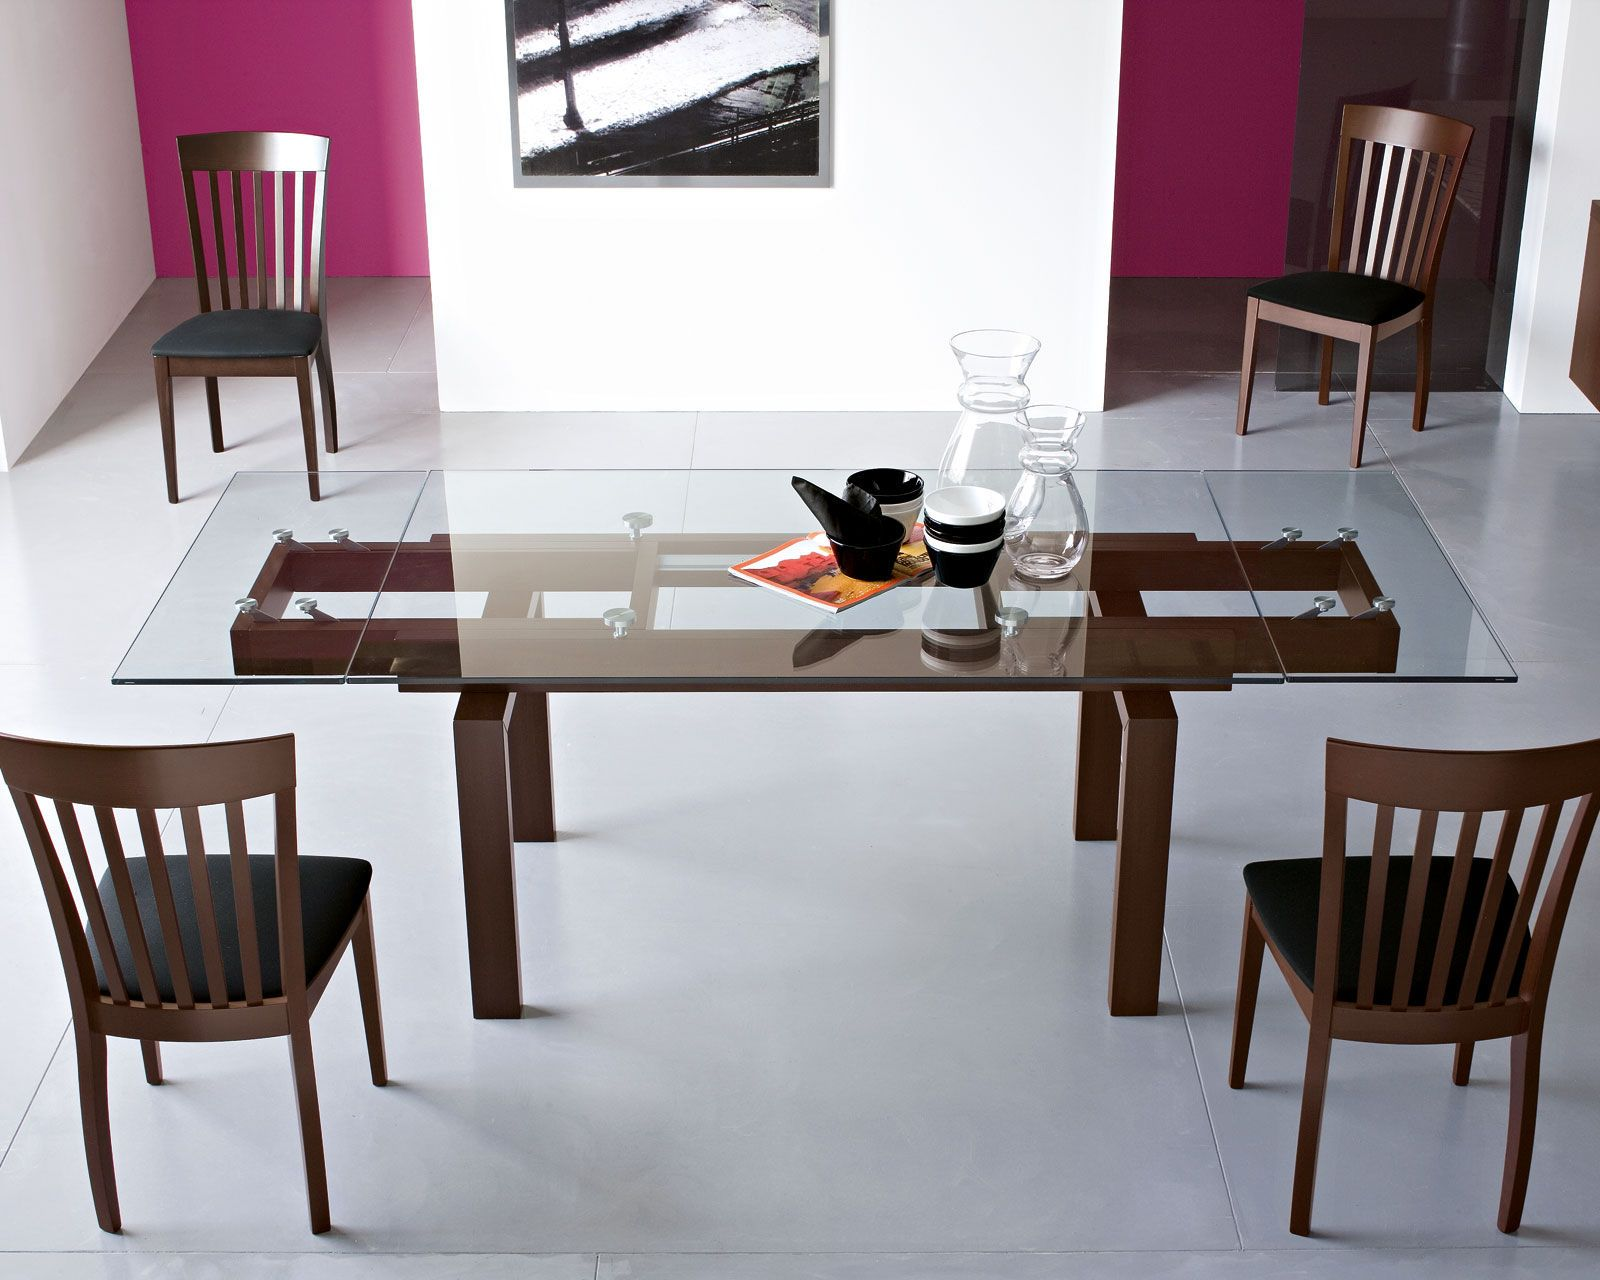 10 Person Dining Table 2 Person